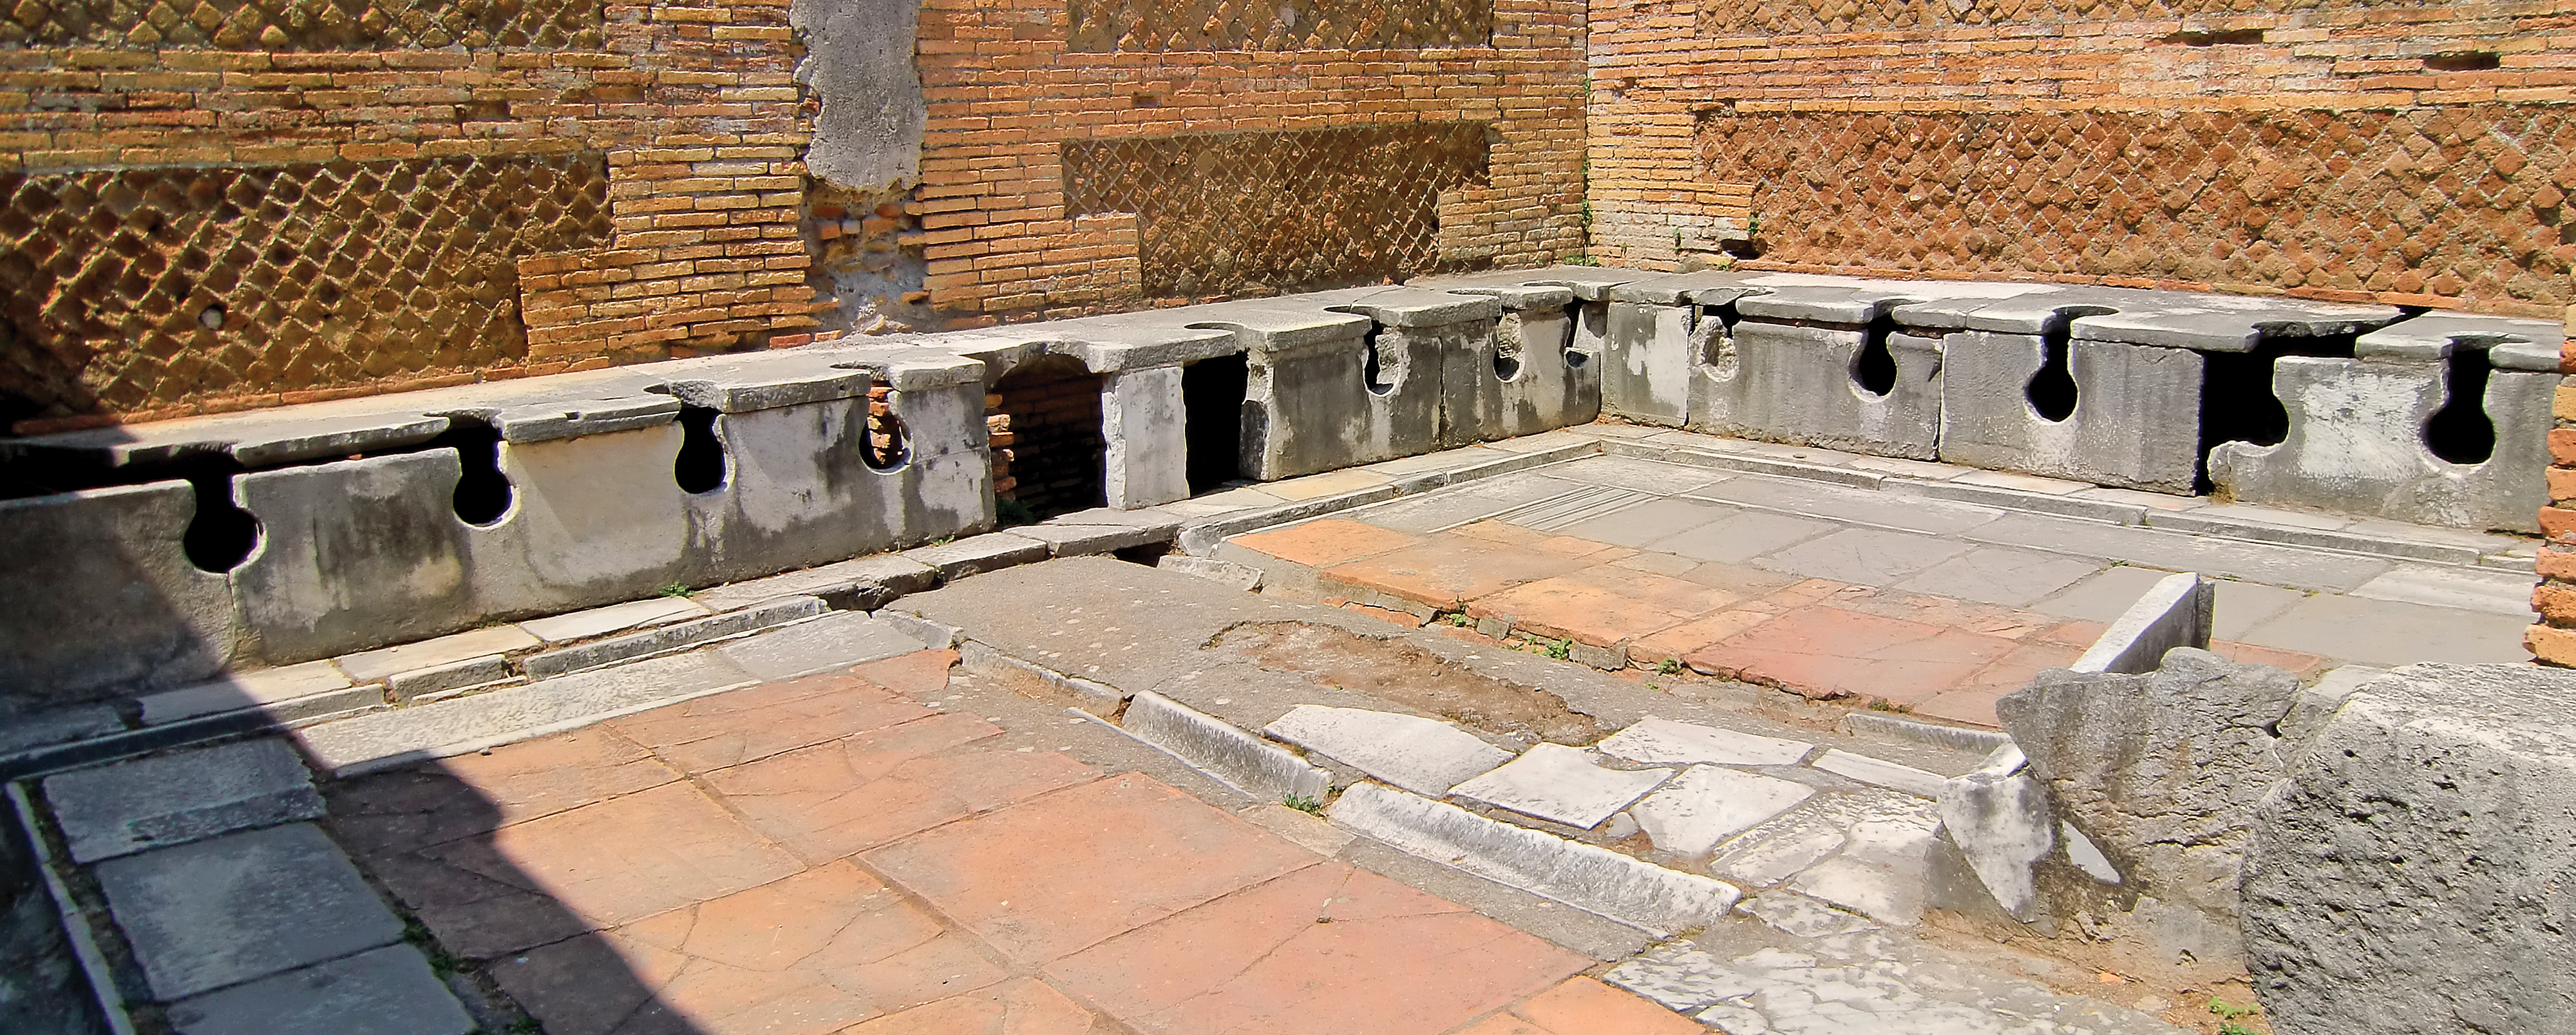 Remnants Of A Public Latrine Built In Ostia